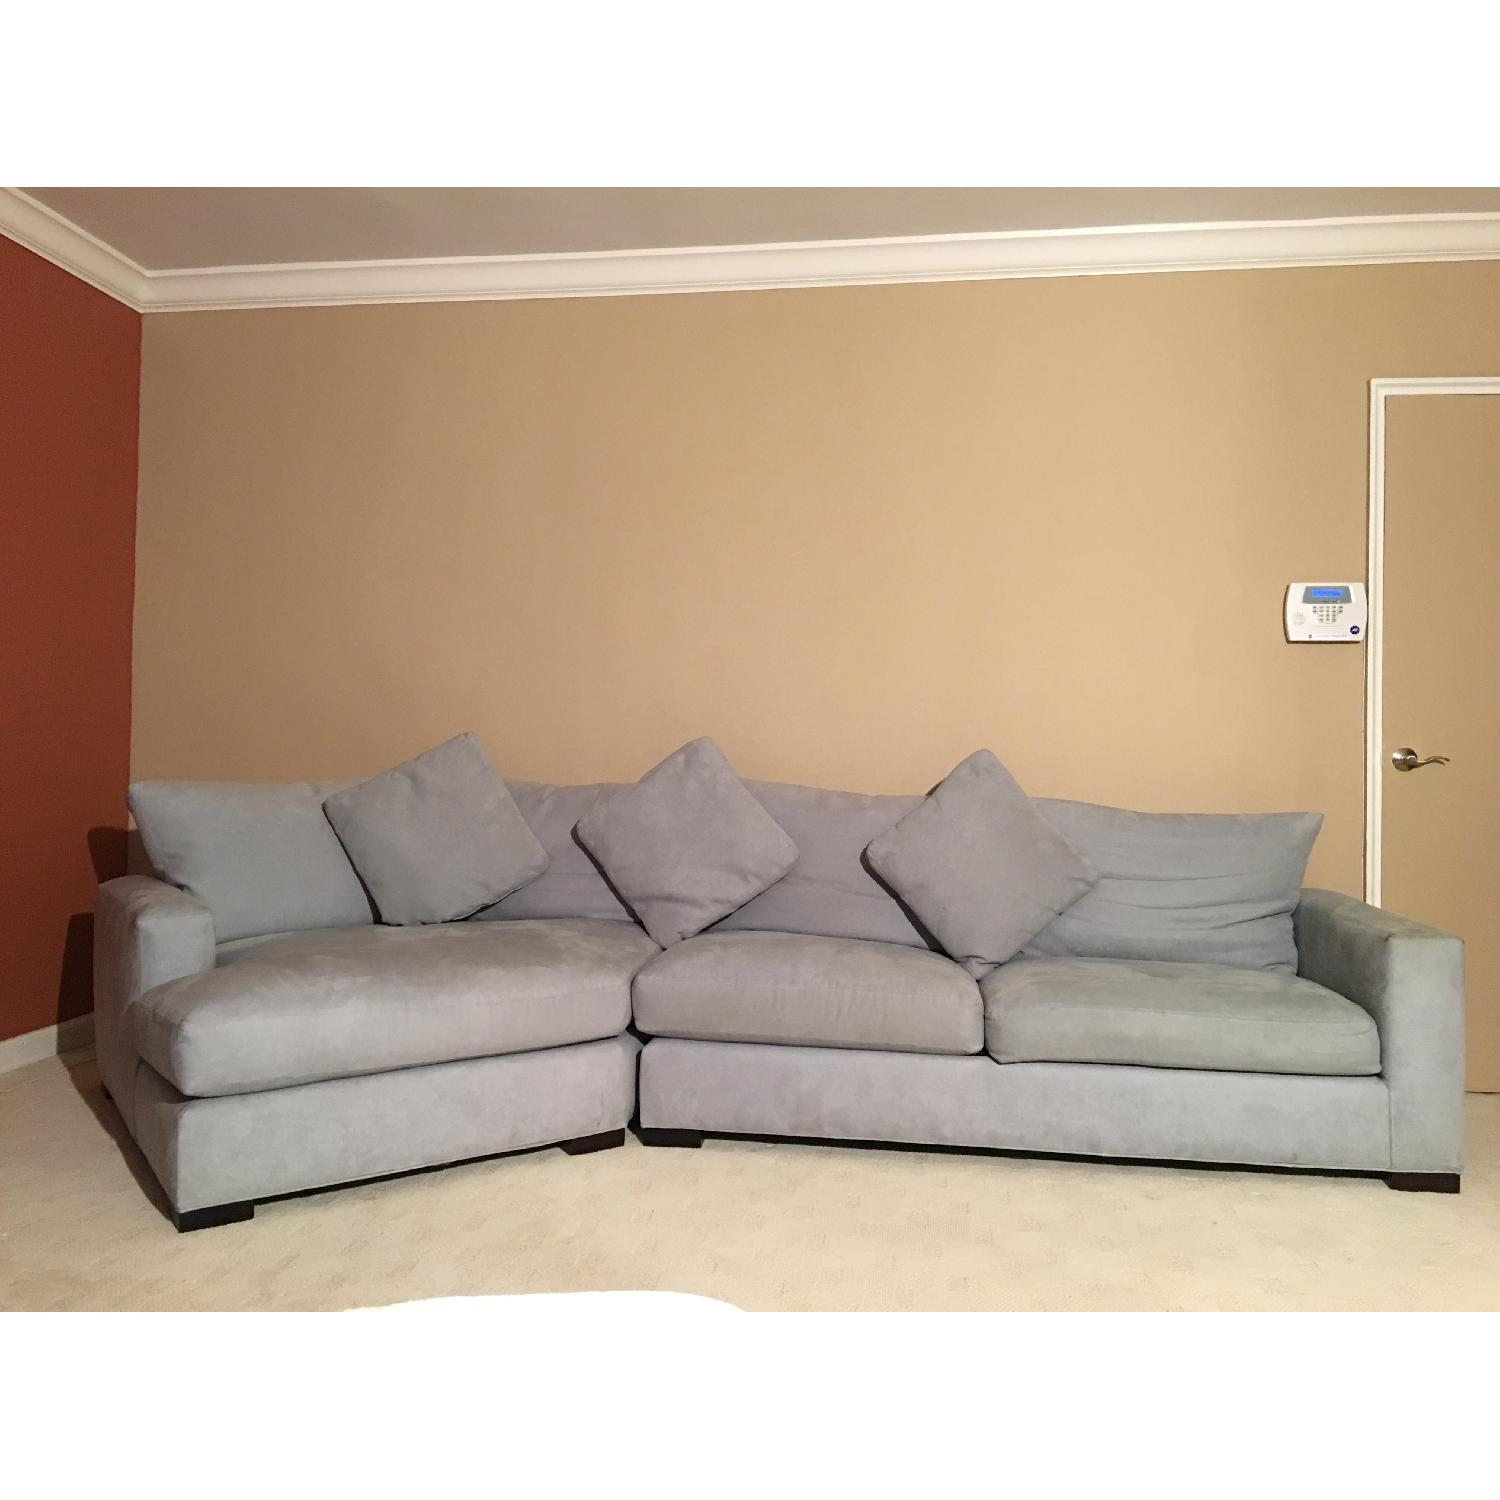 Room & Board Microsuede L-Shaped Couch - image-2